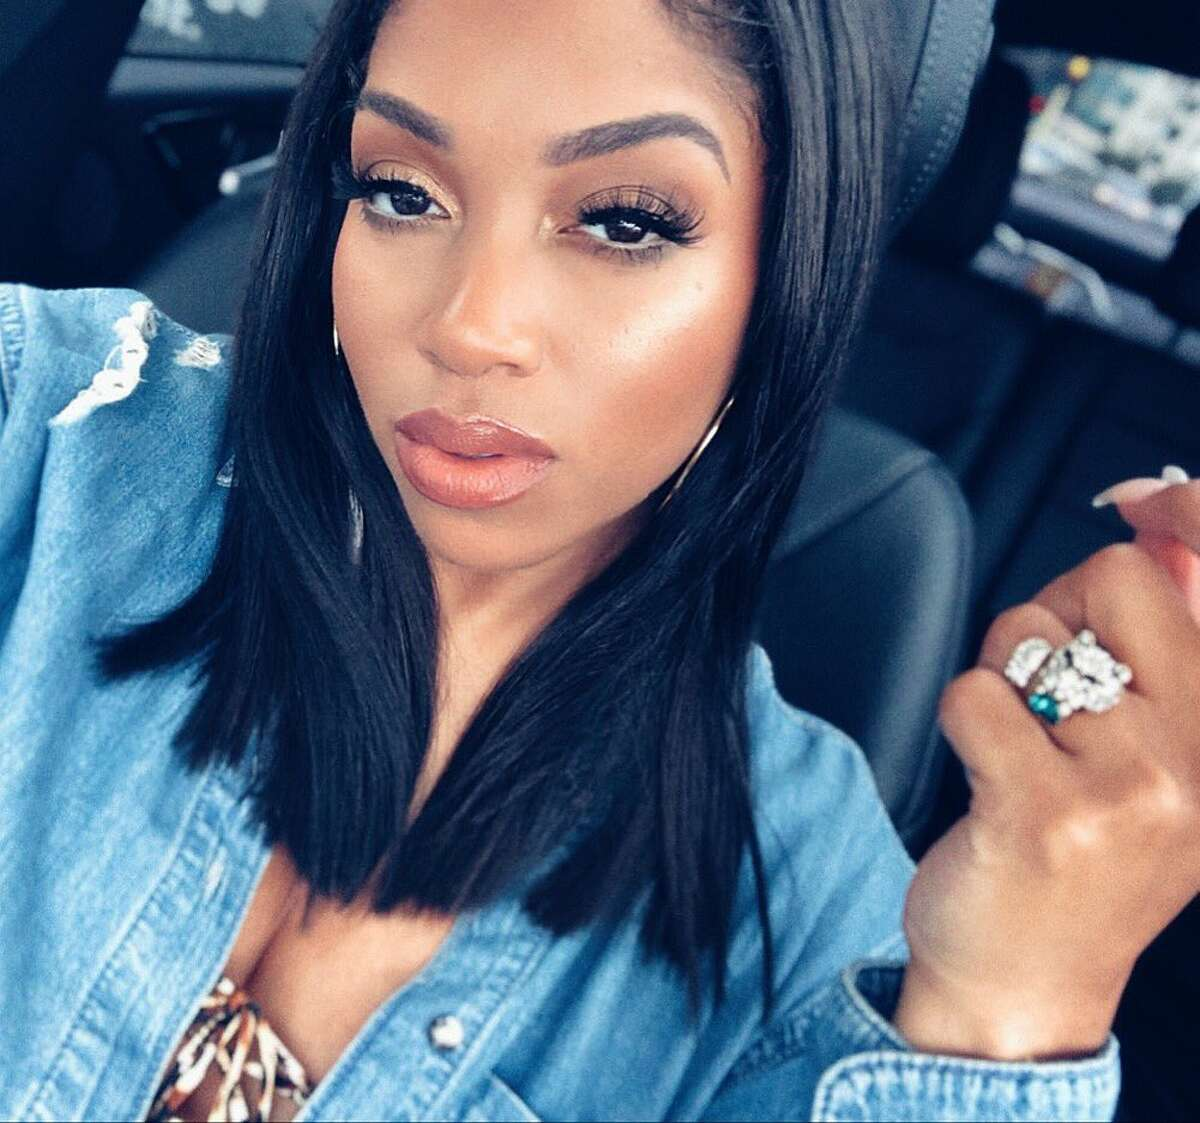 Brooke Valentine is a series regular on the popular VH1 series